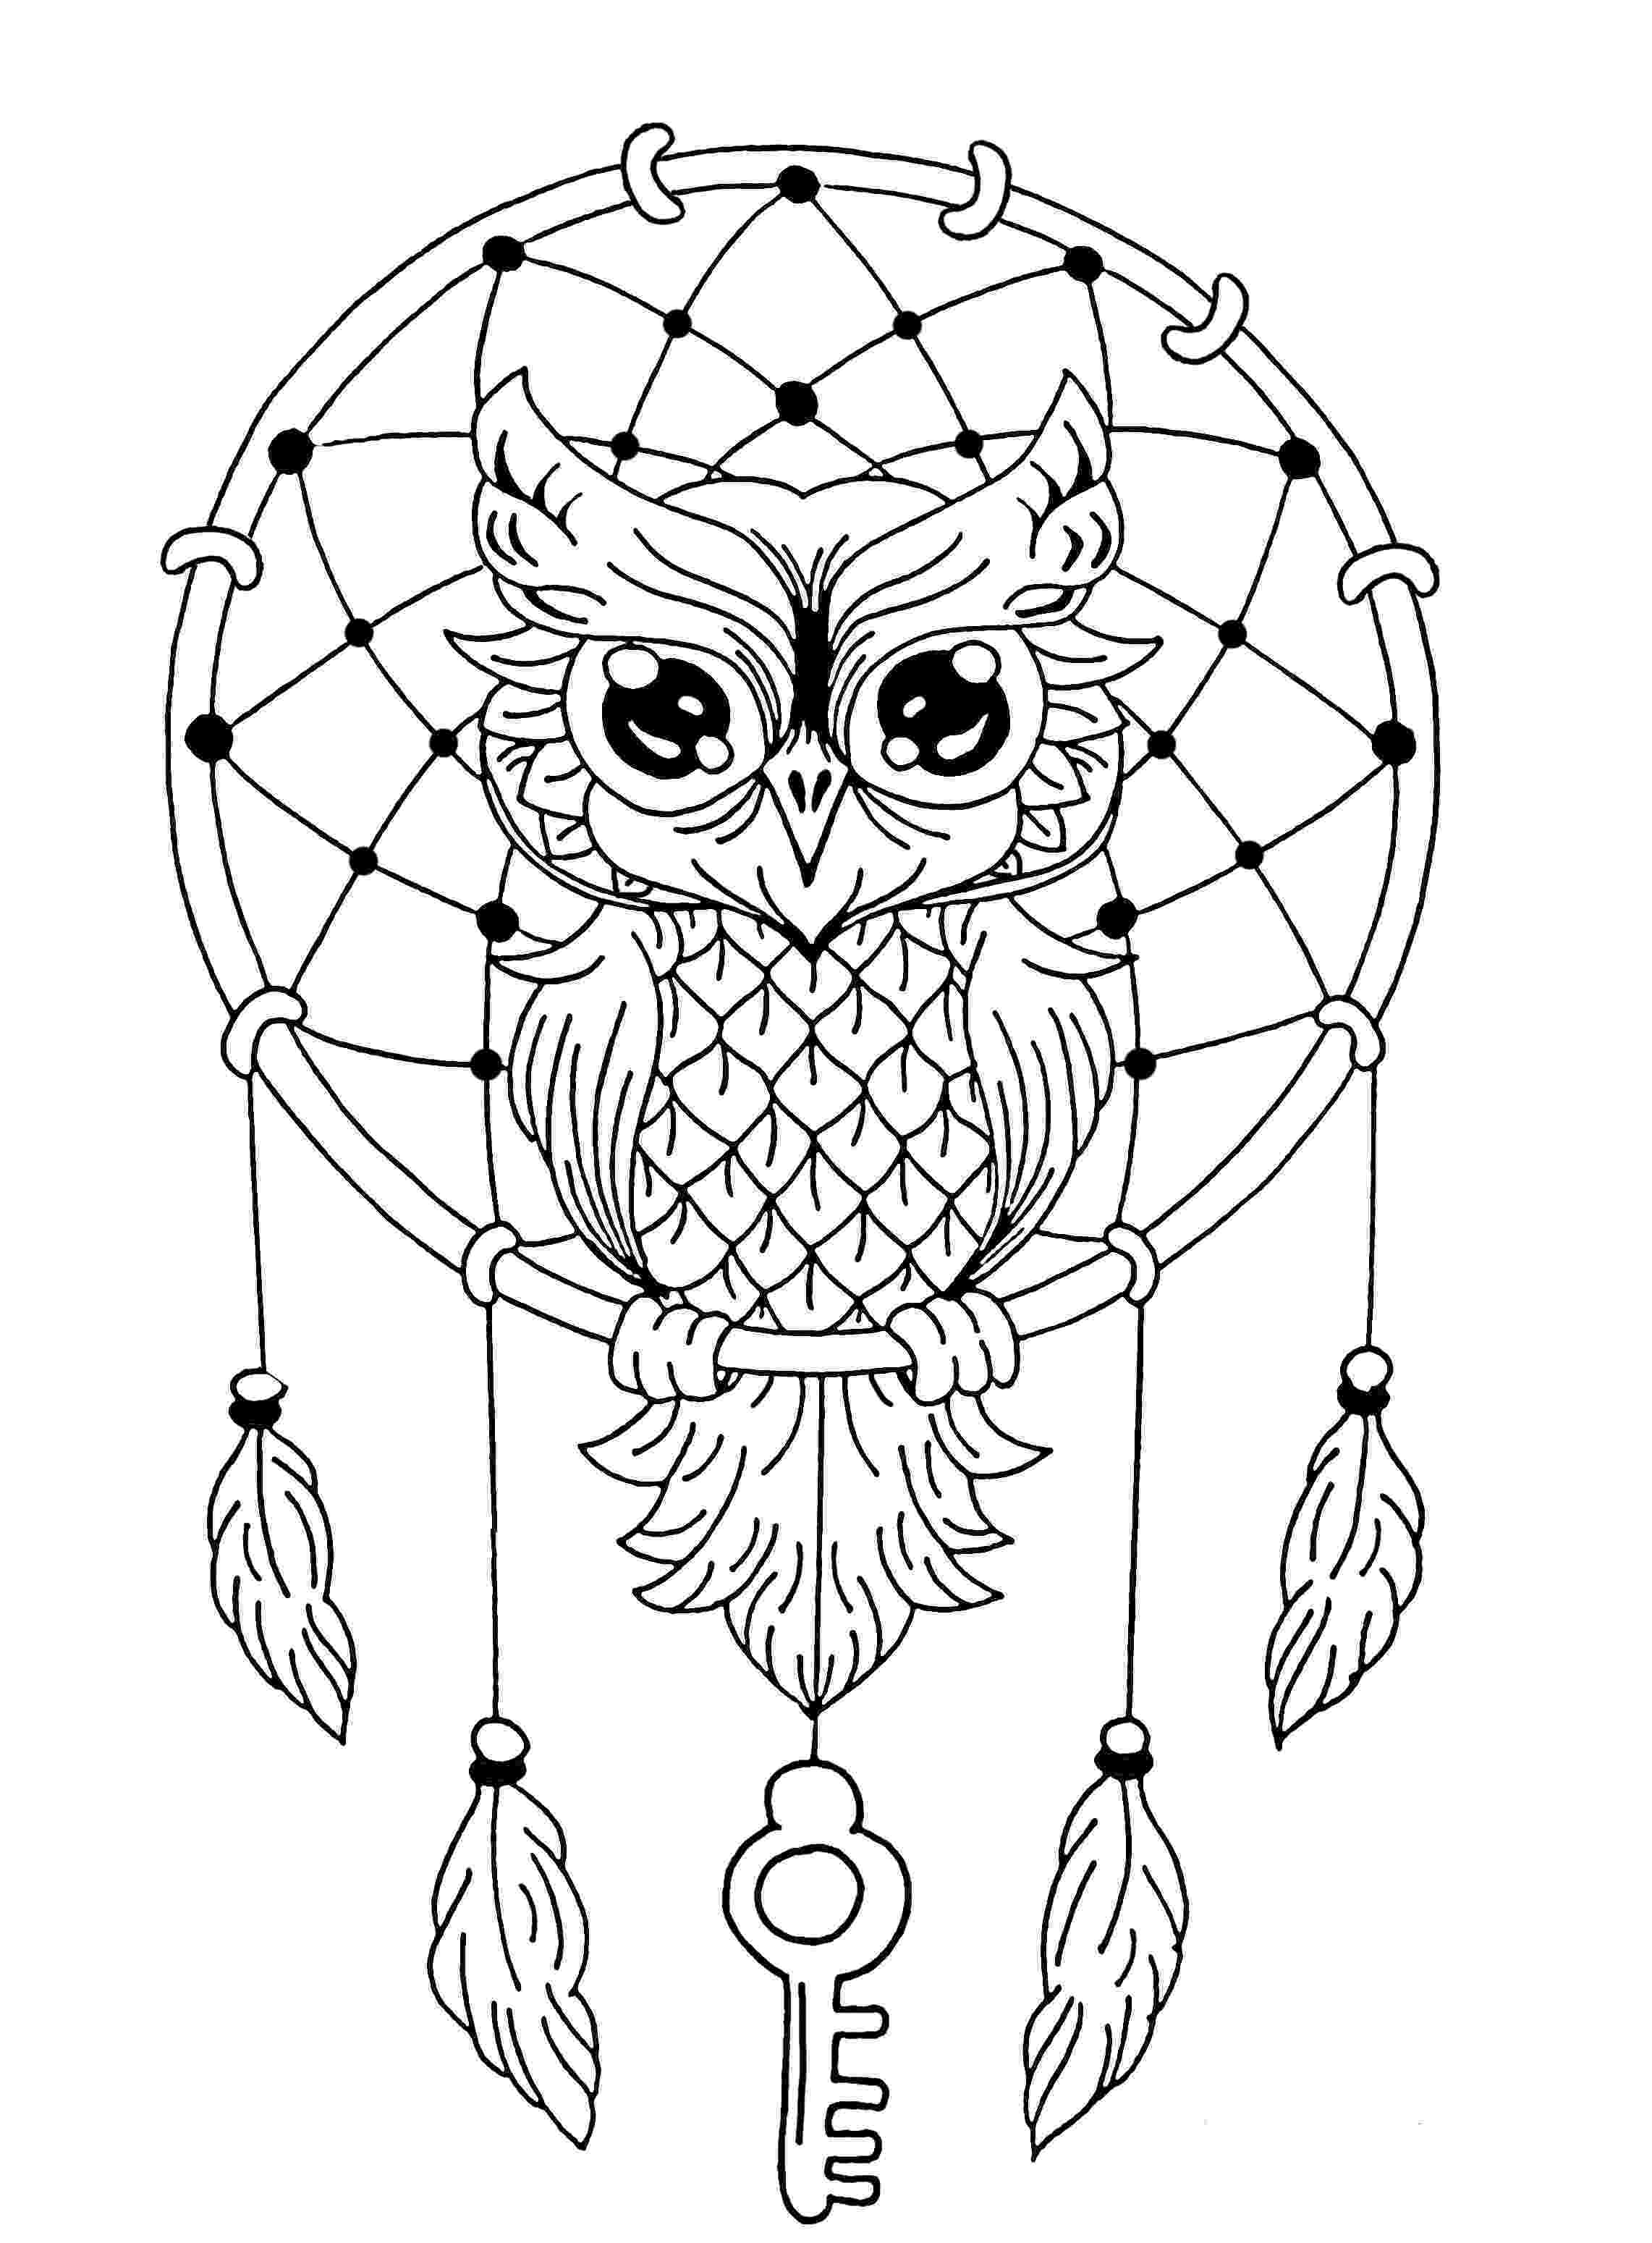 mandala owl hey everyone check out this awesome intricate owl for owl mandala